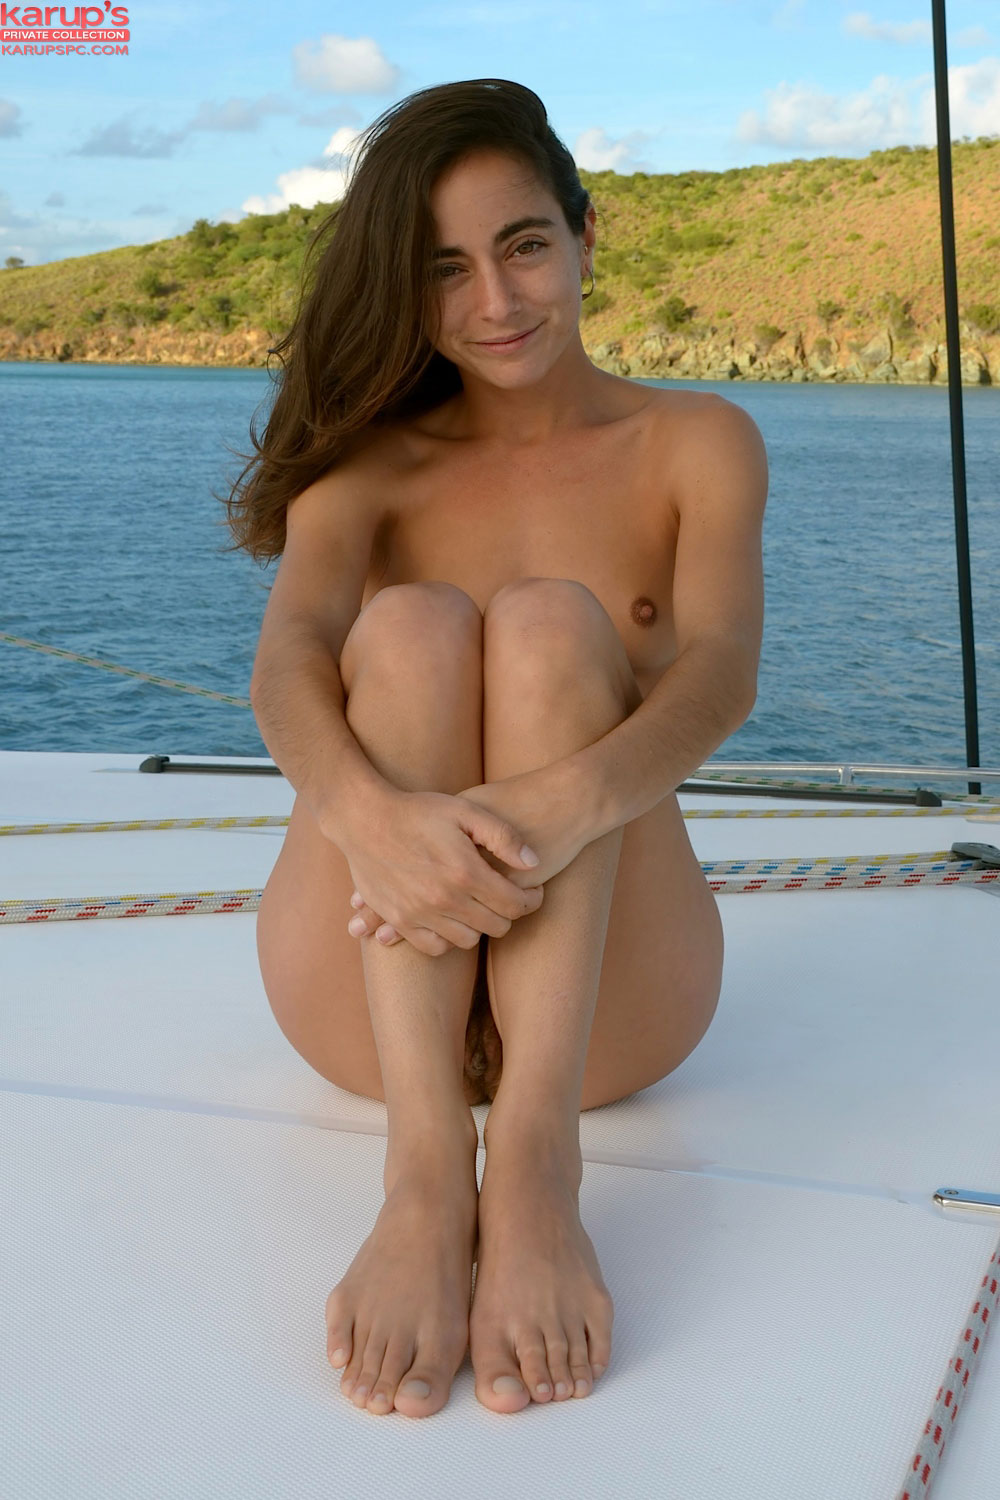 naked in a boat